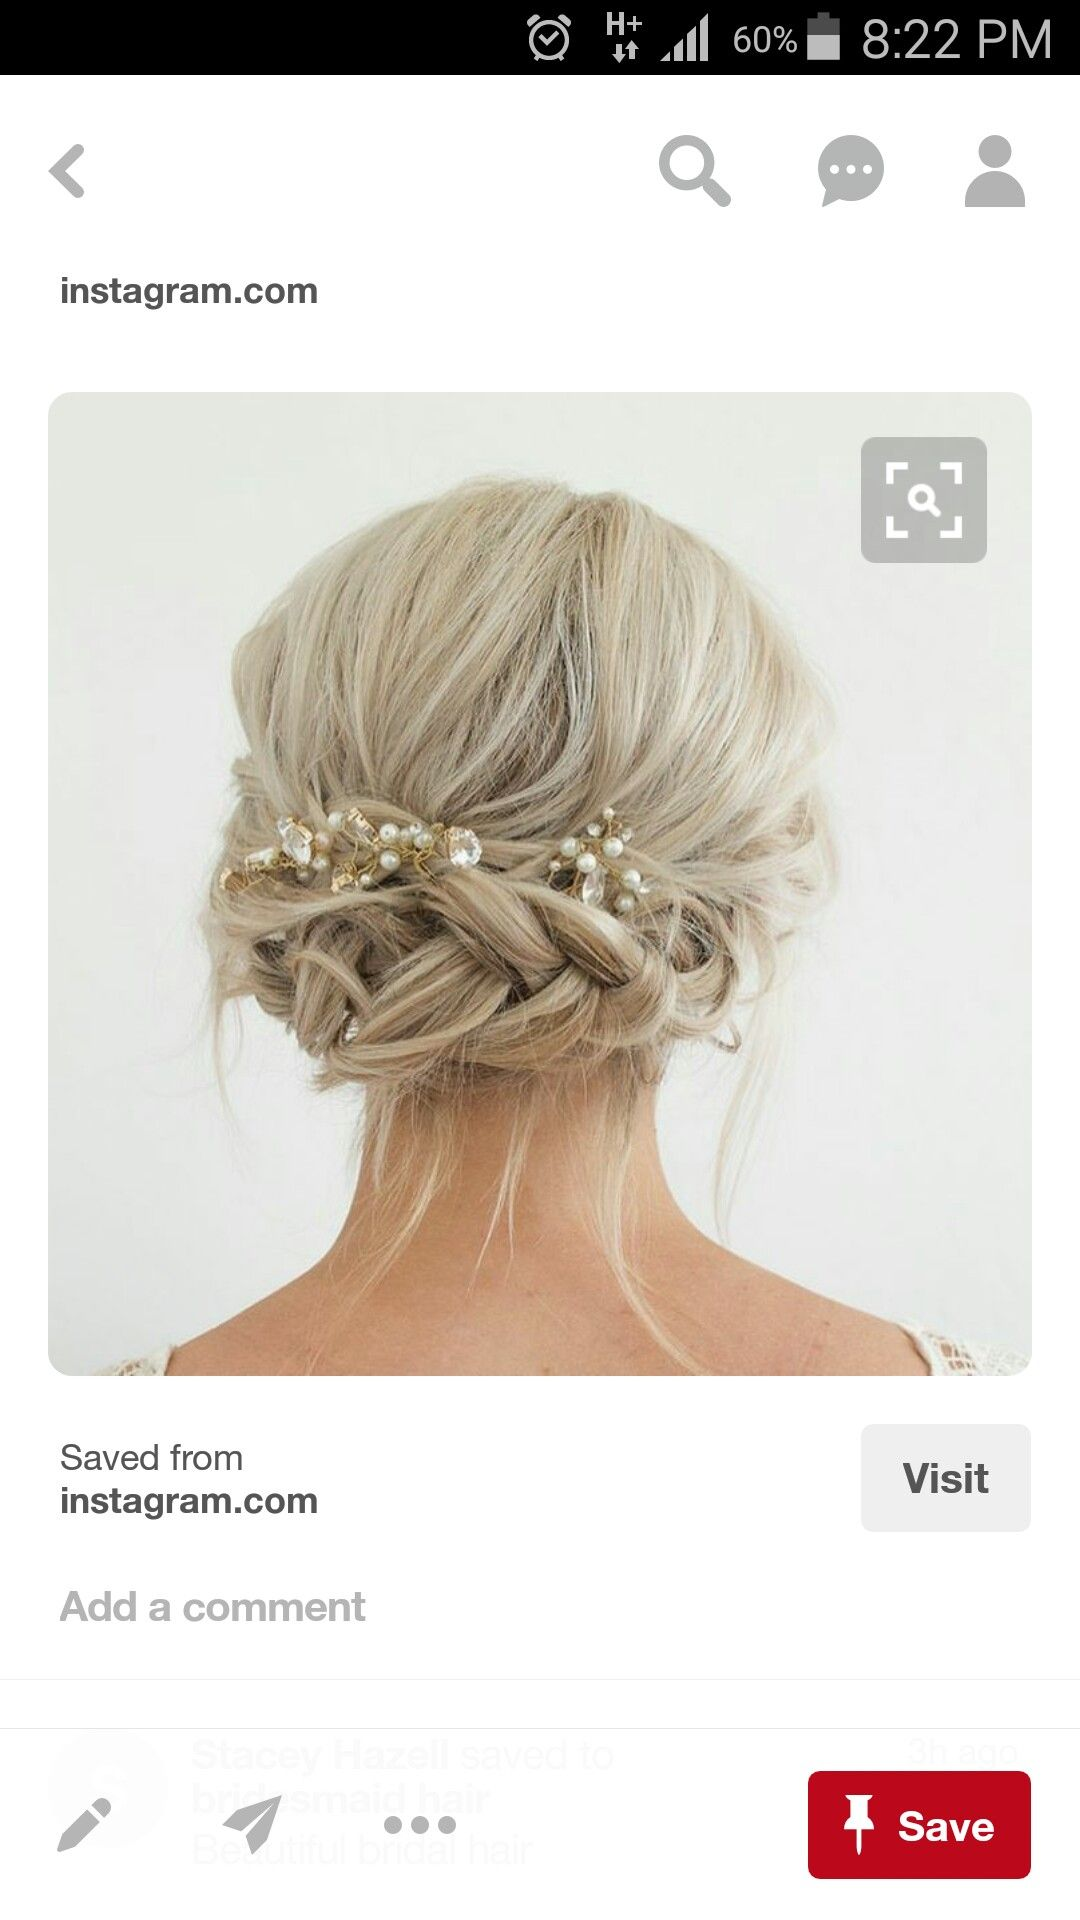 Pin by Stacey Hazell on Casual Hair | Pinterest | Casual hair